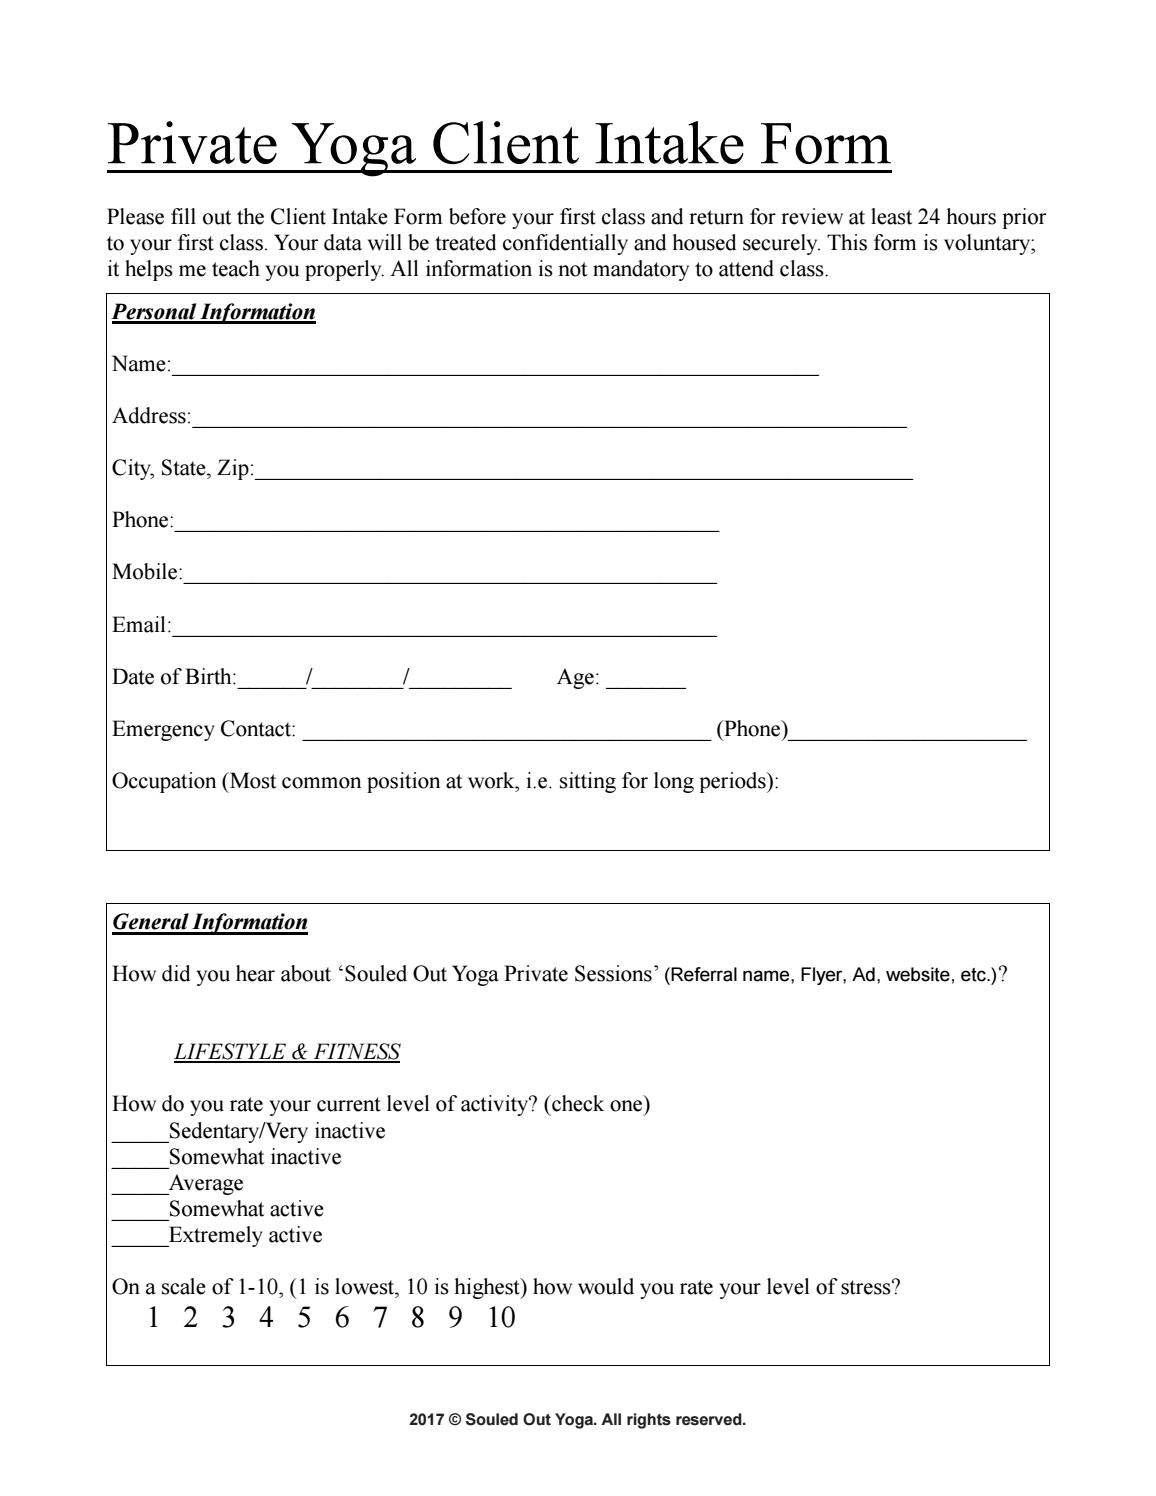 private yoga client intake form by souledoutyoga